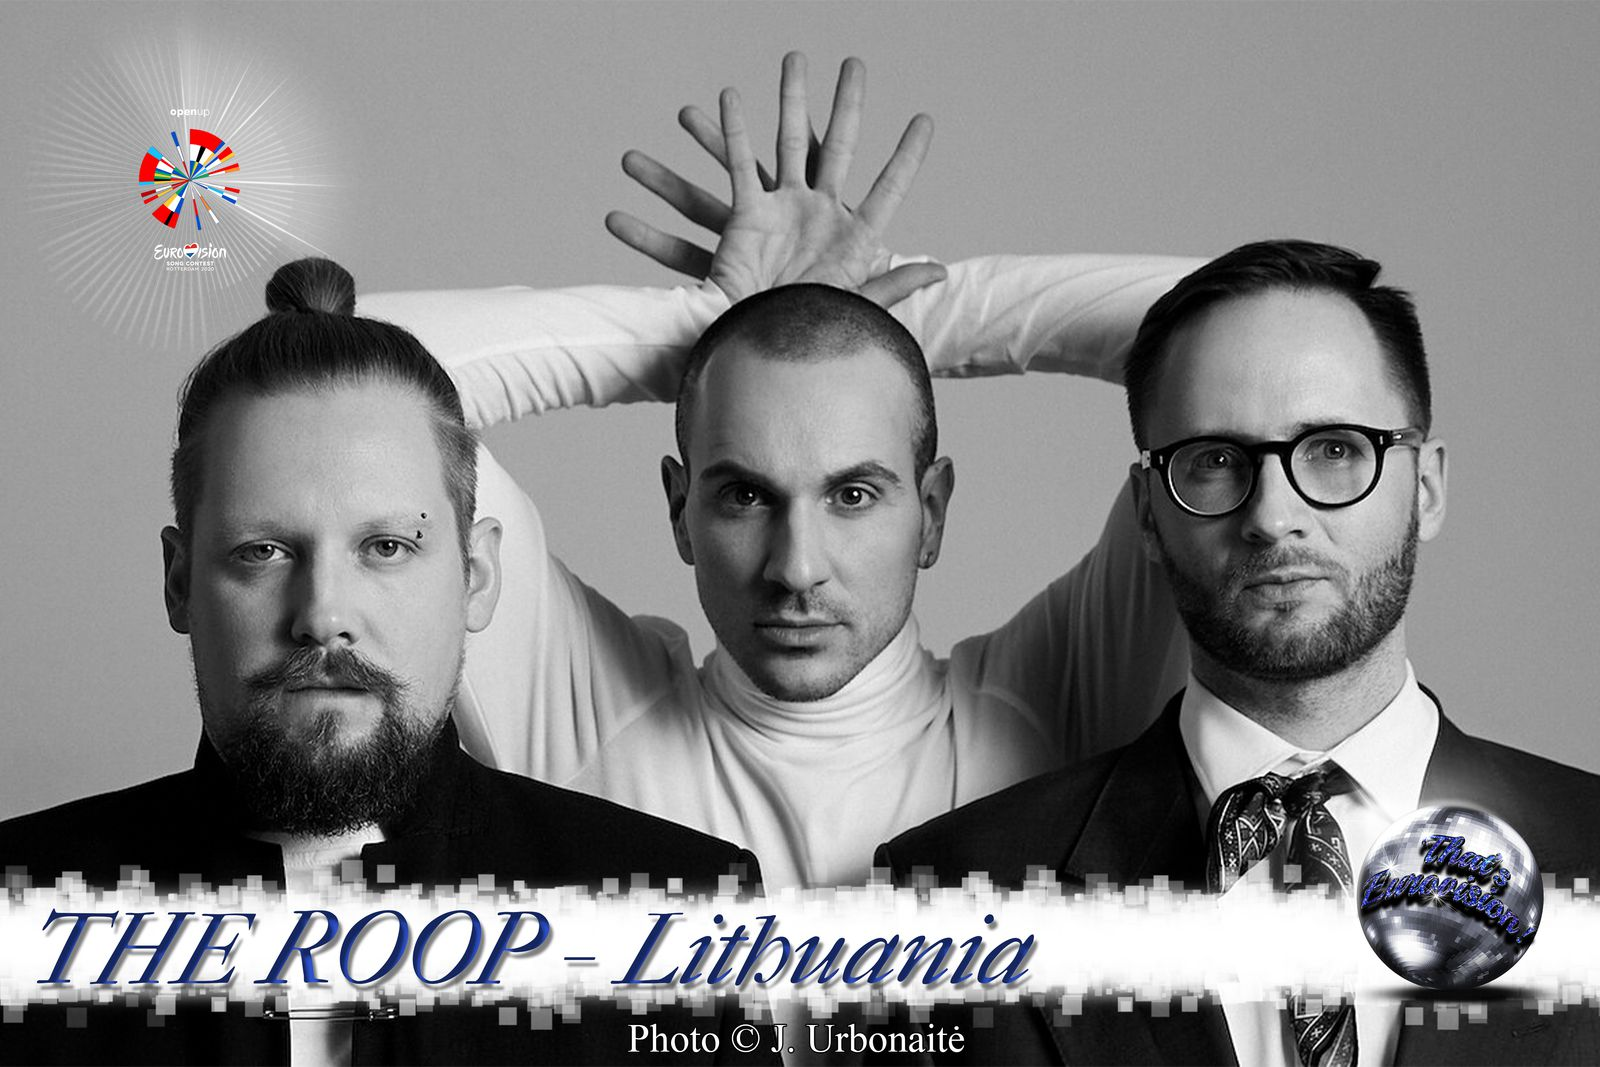 Lithuania 2020 - The ROOP (On Fire)